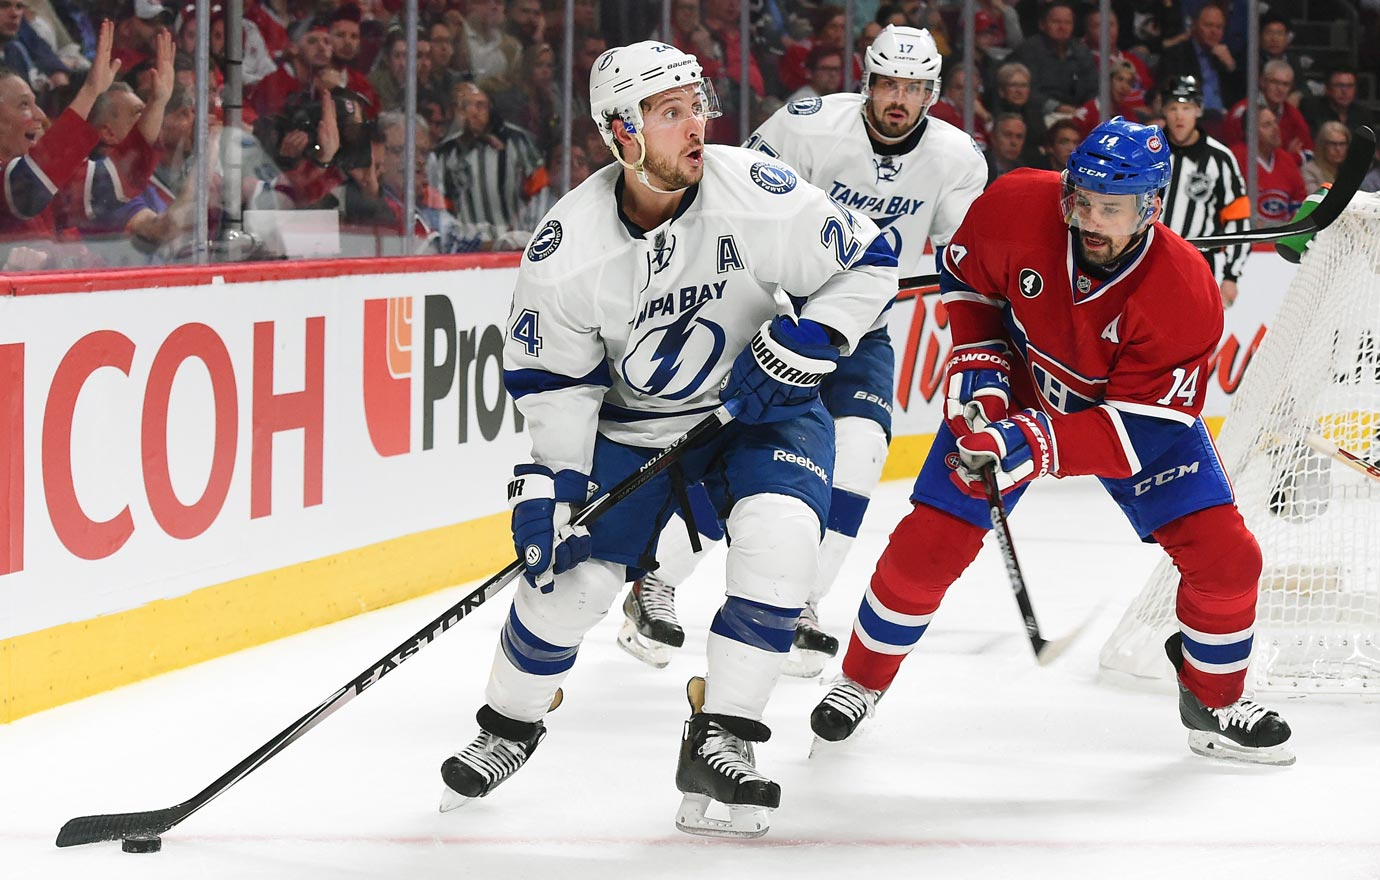 On the eve of Game 6 of their second round series vs. Montreal, the Lightning's alternate captain was unable to practice due to abdominal pain. He was taken to Tampa General Hospital where he was diagnosed with acute appendicitis. After surgery he was expected to be sidelined indefinitely.